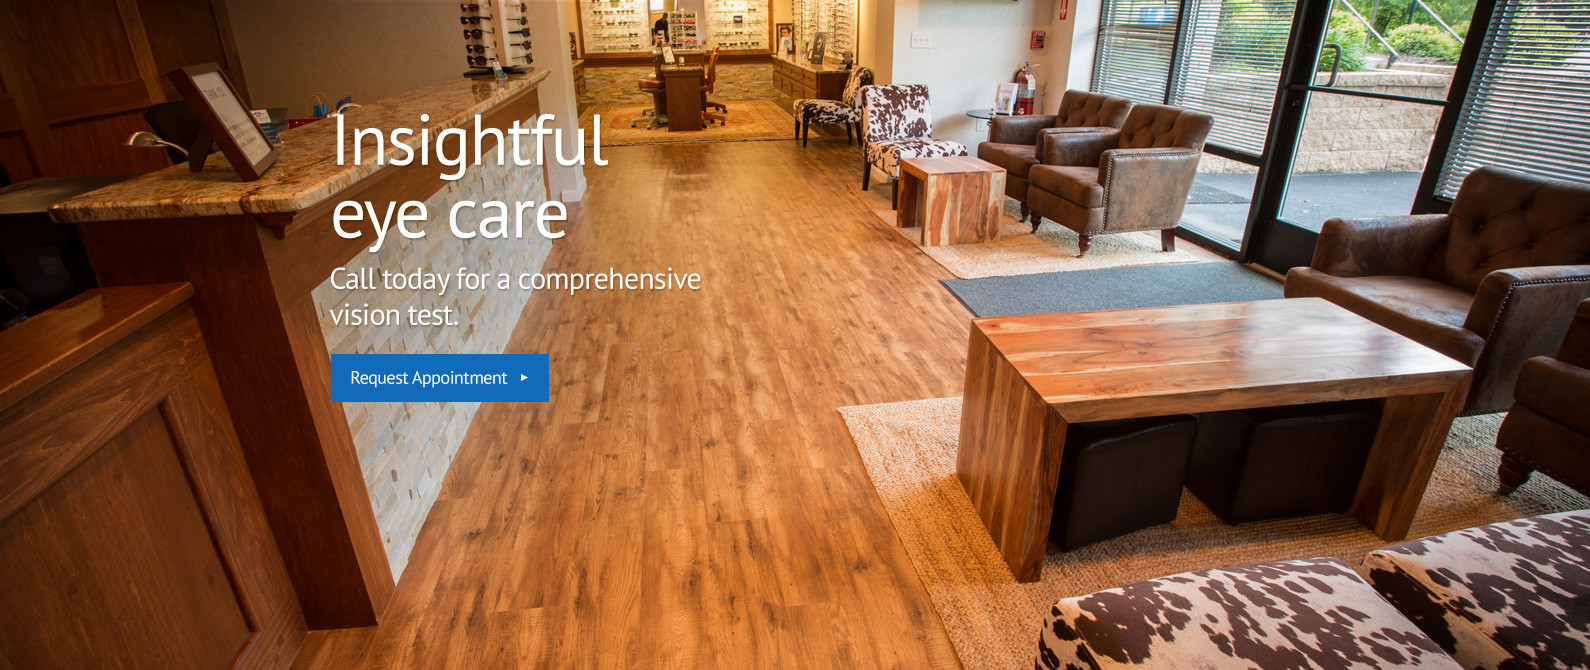 pg model hardwood flooring price of seraly eye care associates optometry in mcmurray pa usa home pertaining to banner slide3